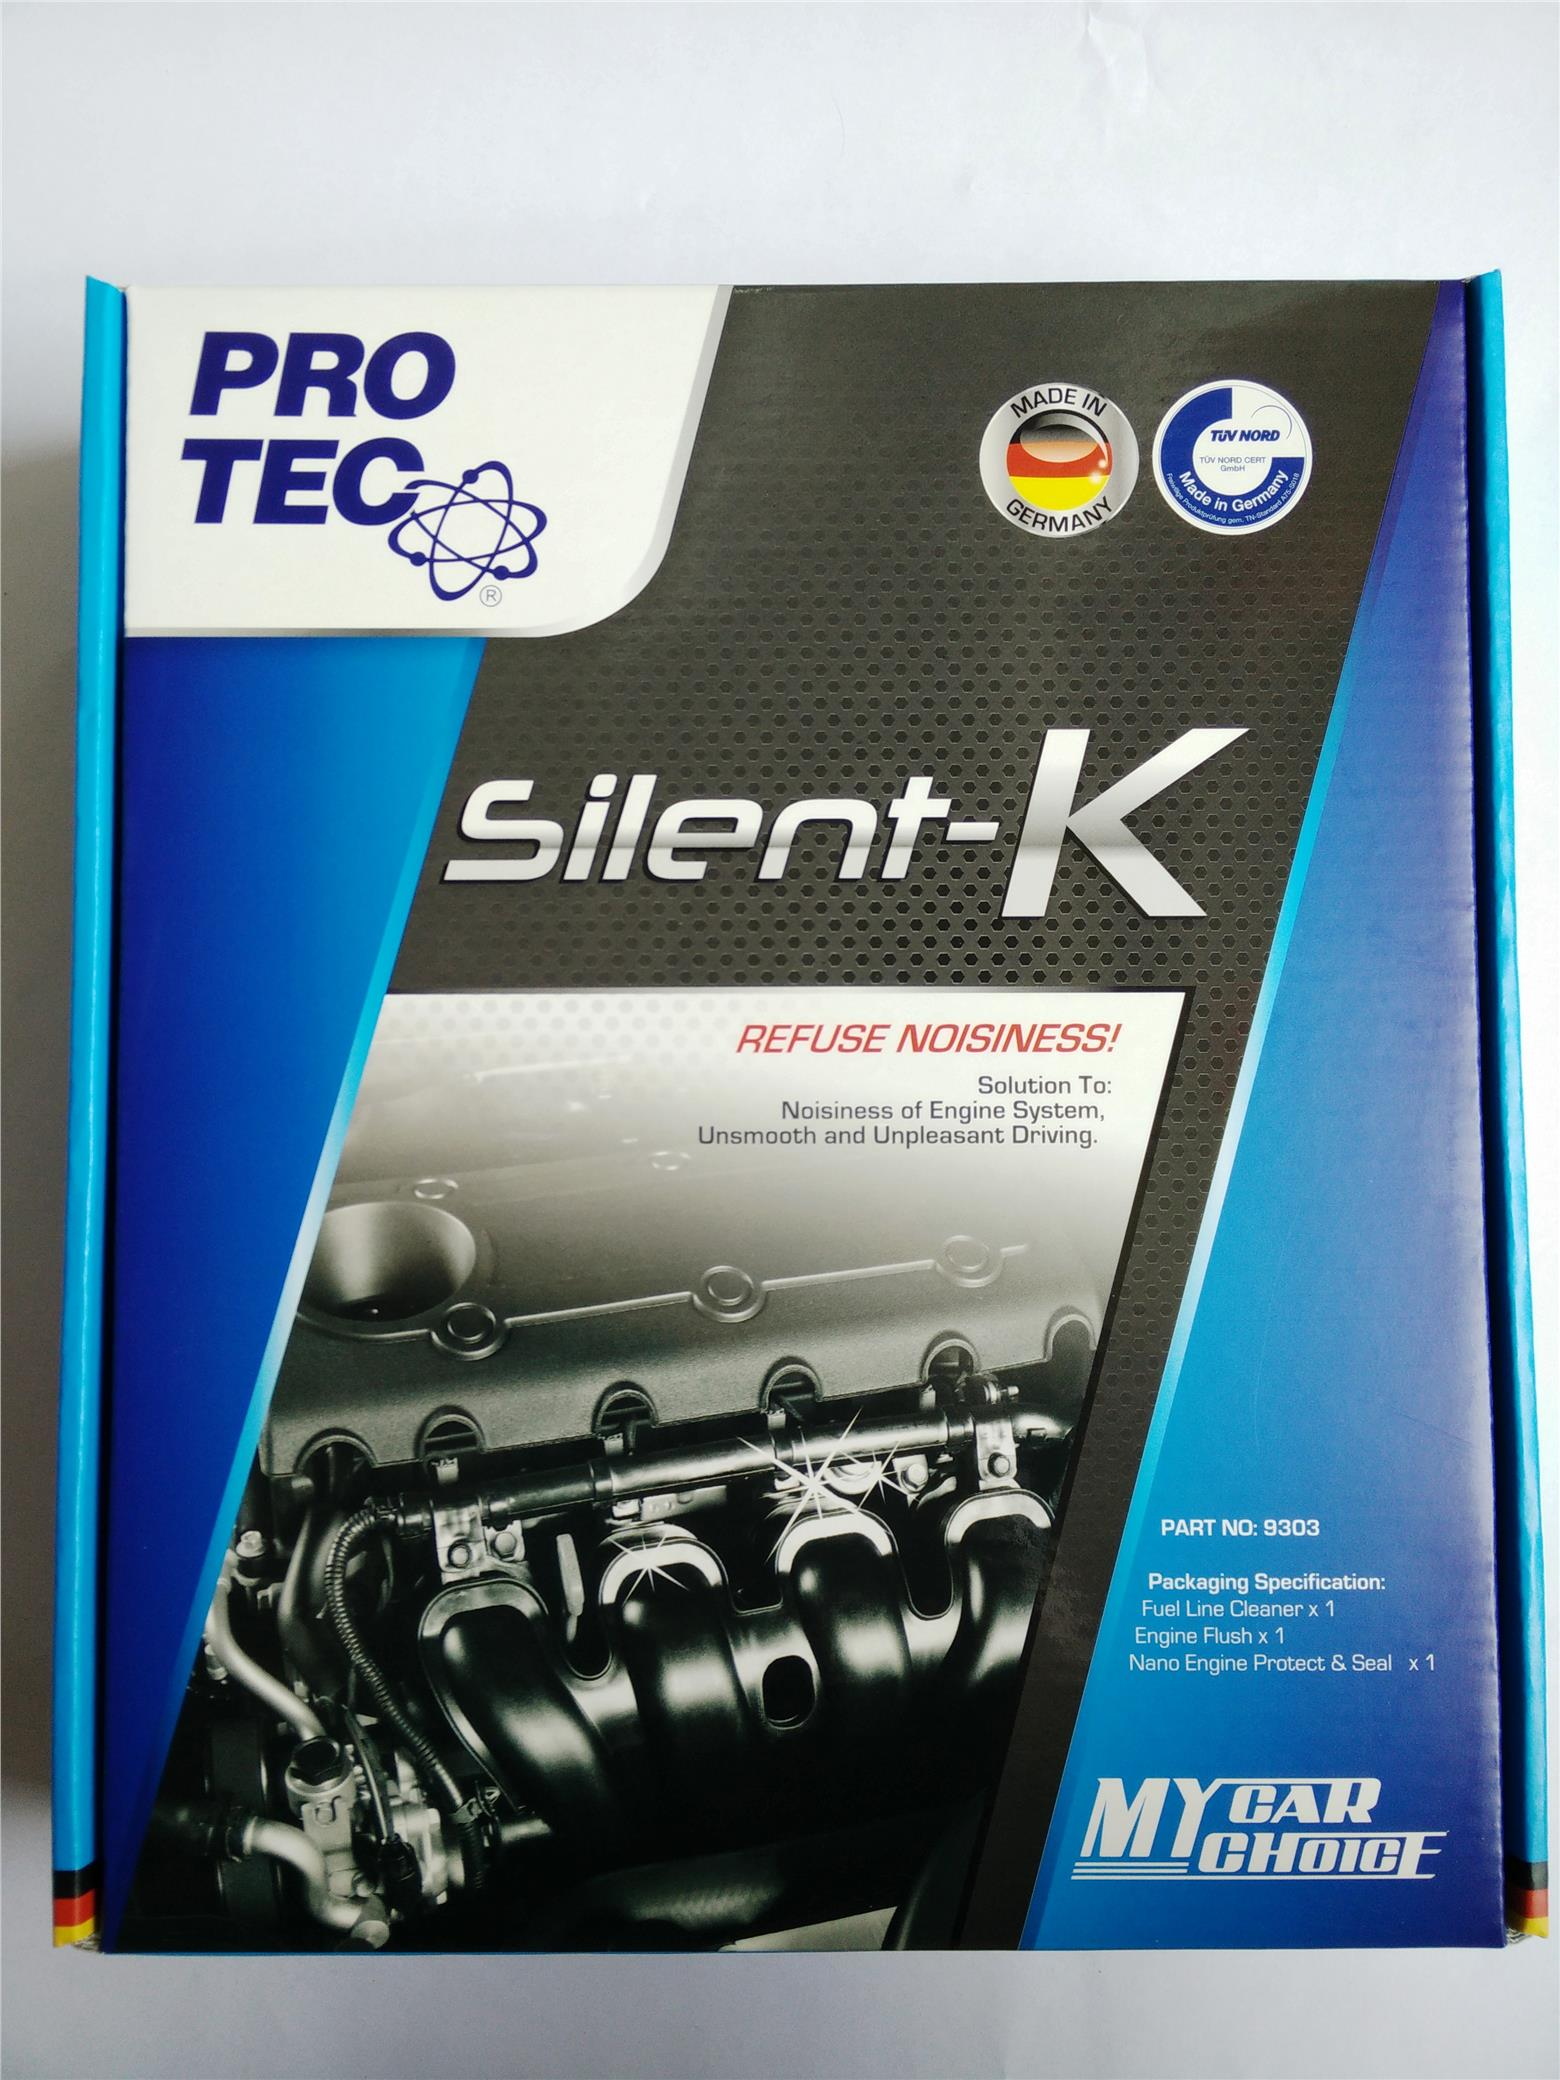 Pro Tec Silent-K Reduce Engine noise,smoothen engine.Made In Germany